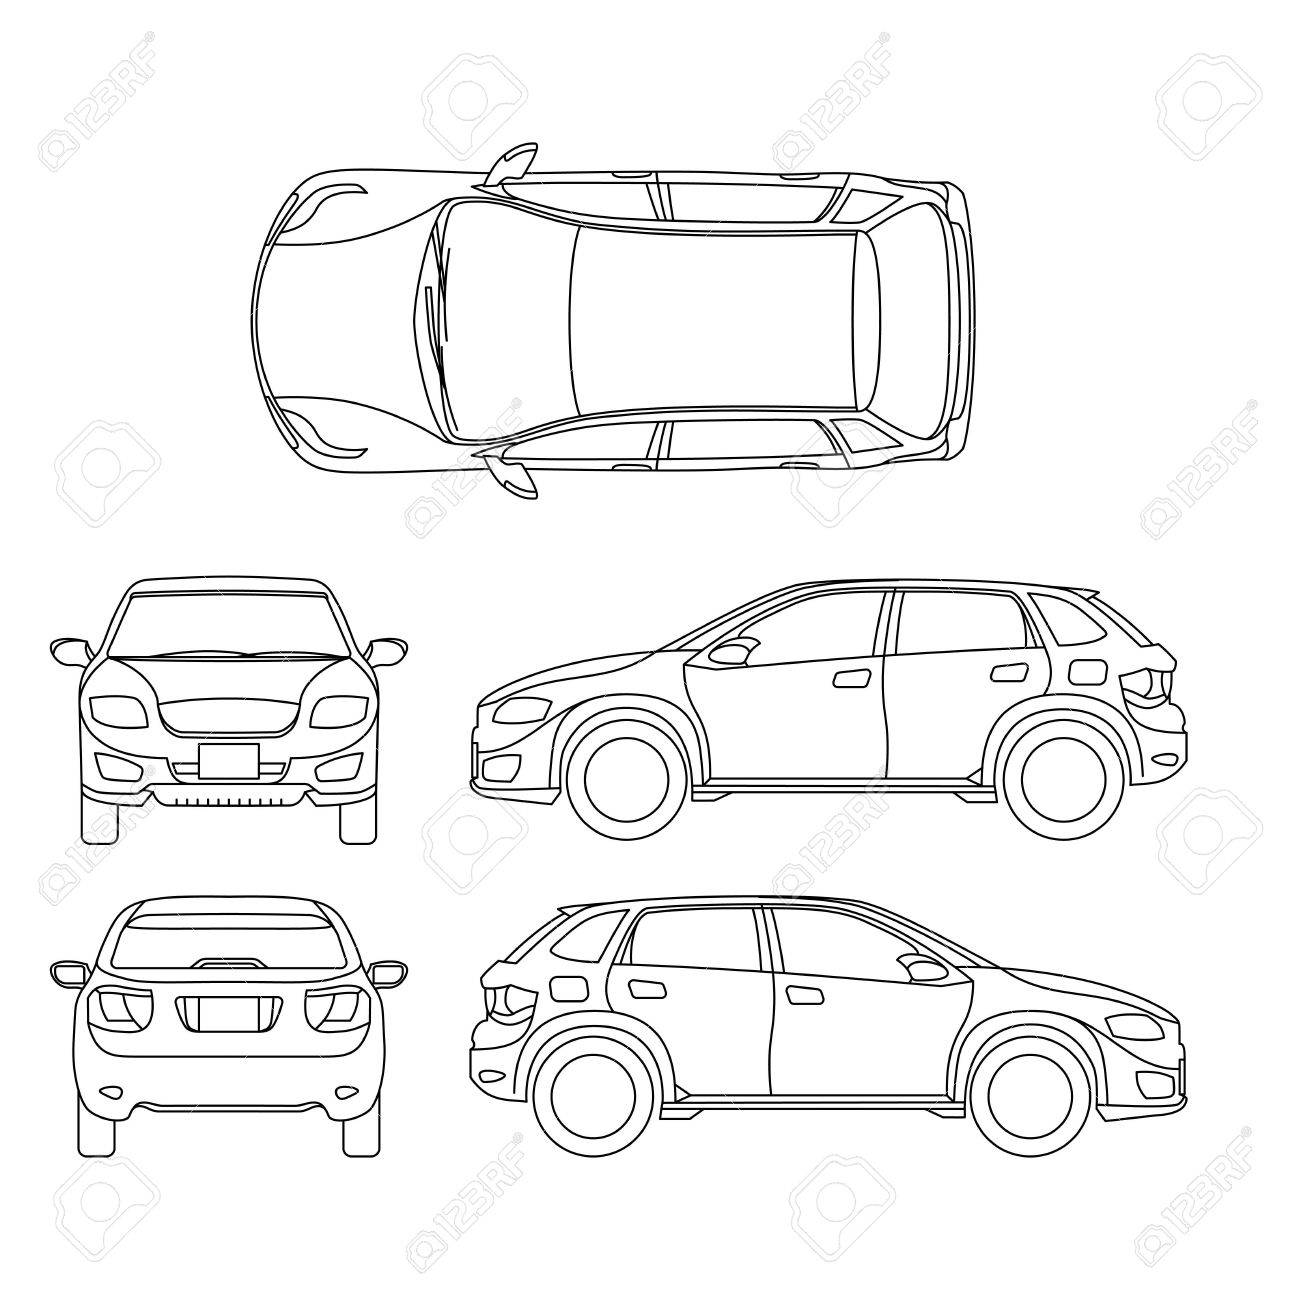 Automobile Drawing At Getdrawings